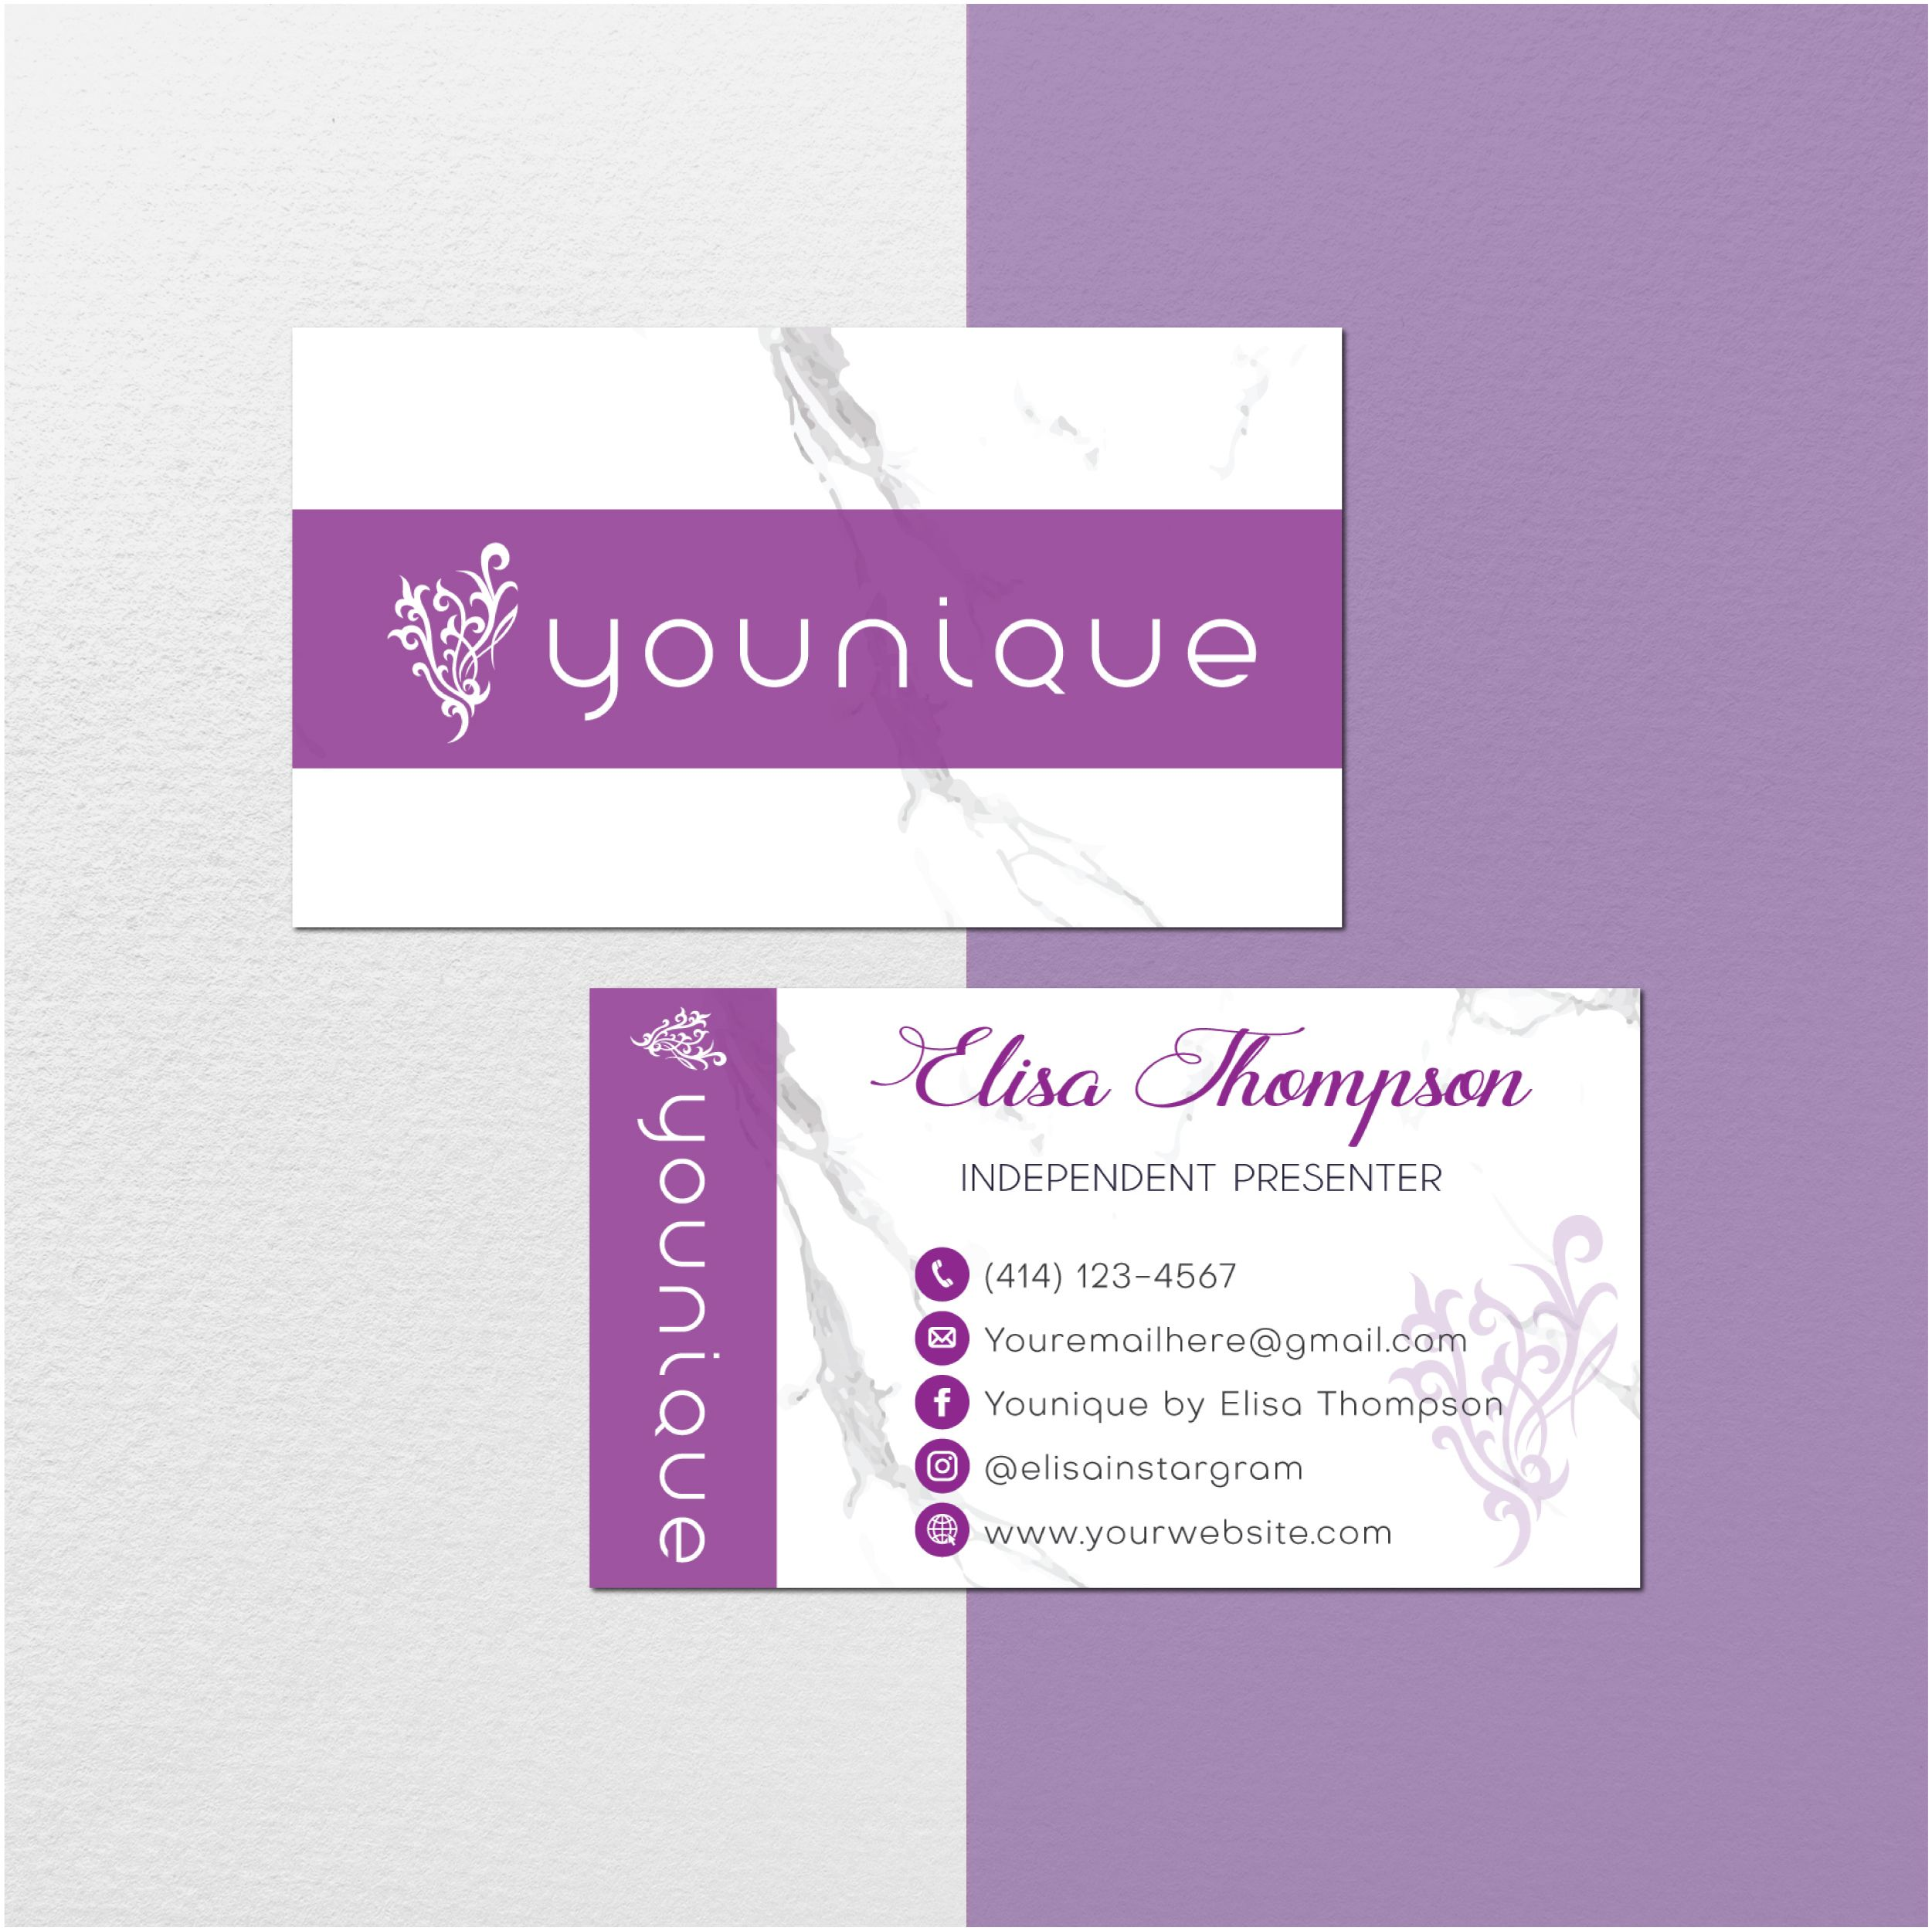 Marble Personalized Younique Business Cards Younique Printable Cards Custom Business Card Younique Business Cards Yq18 Younique Business Cards Younique Business Custom Business Cards